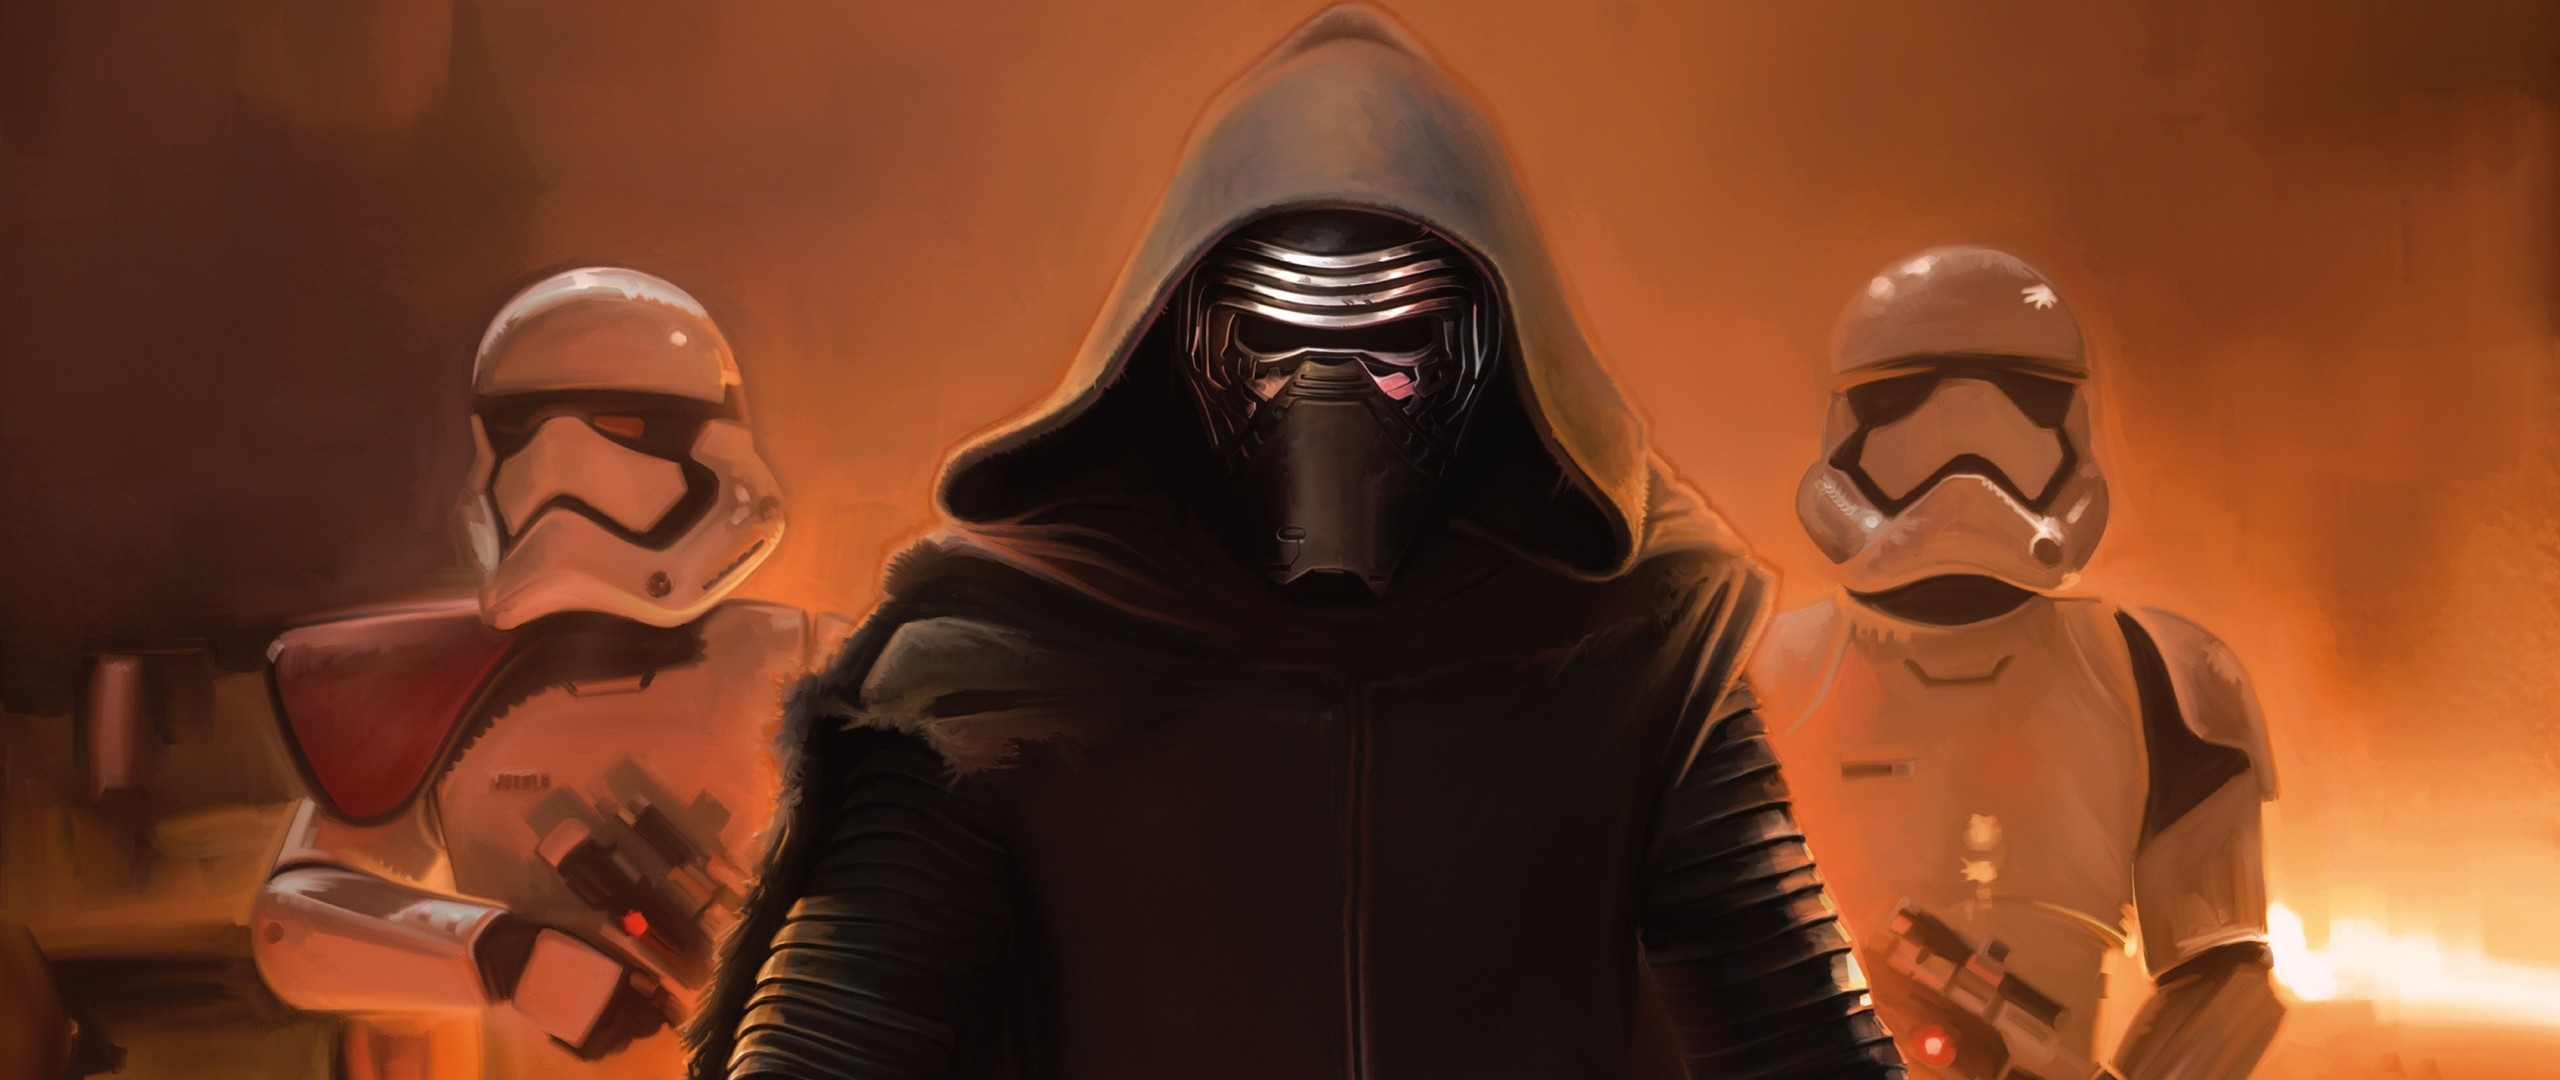 2560x1080  Wallpaper star wars, force, kylo ren, laser sword